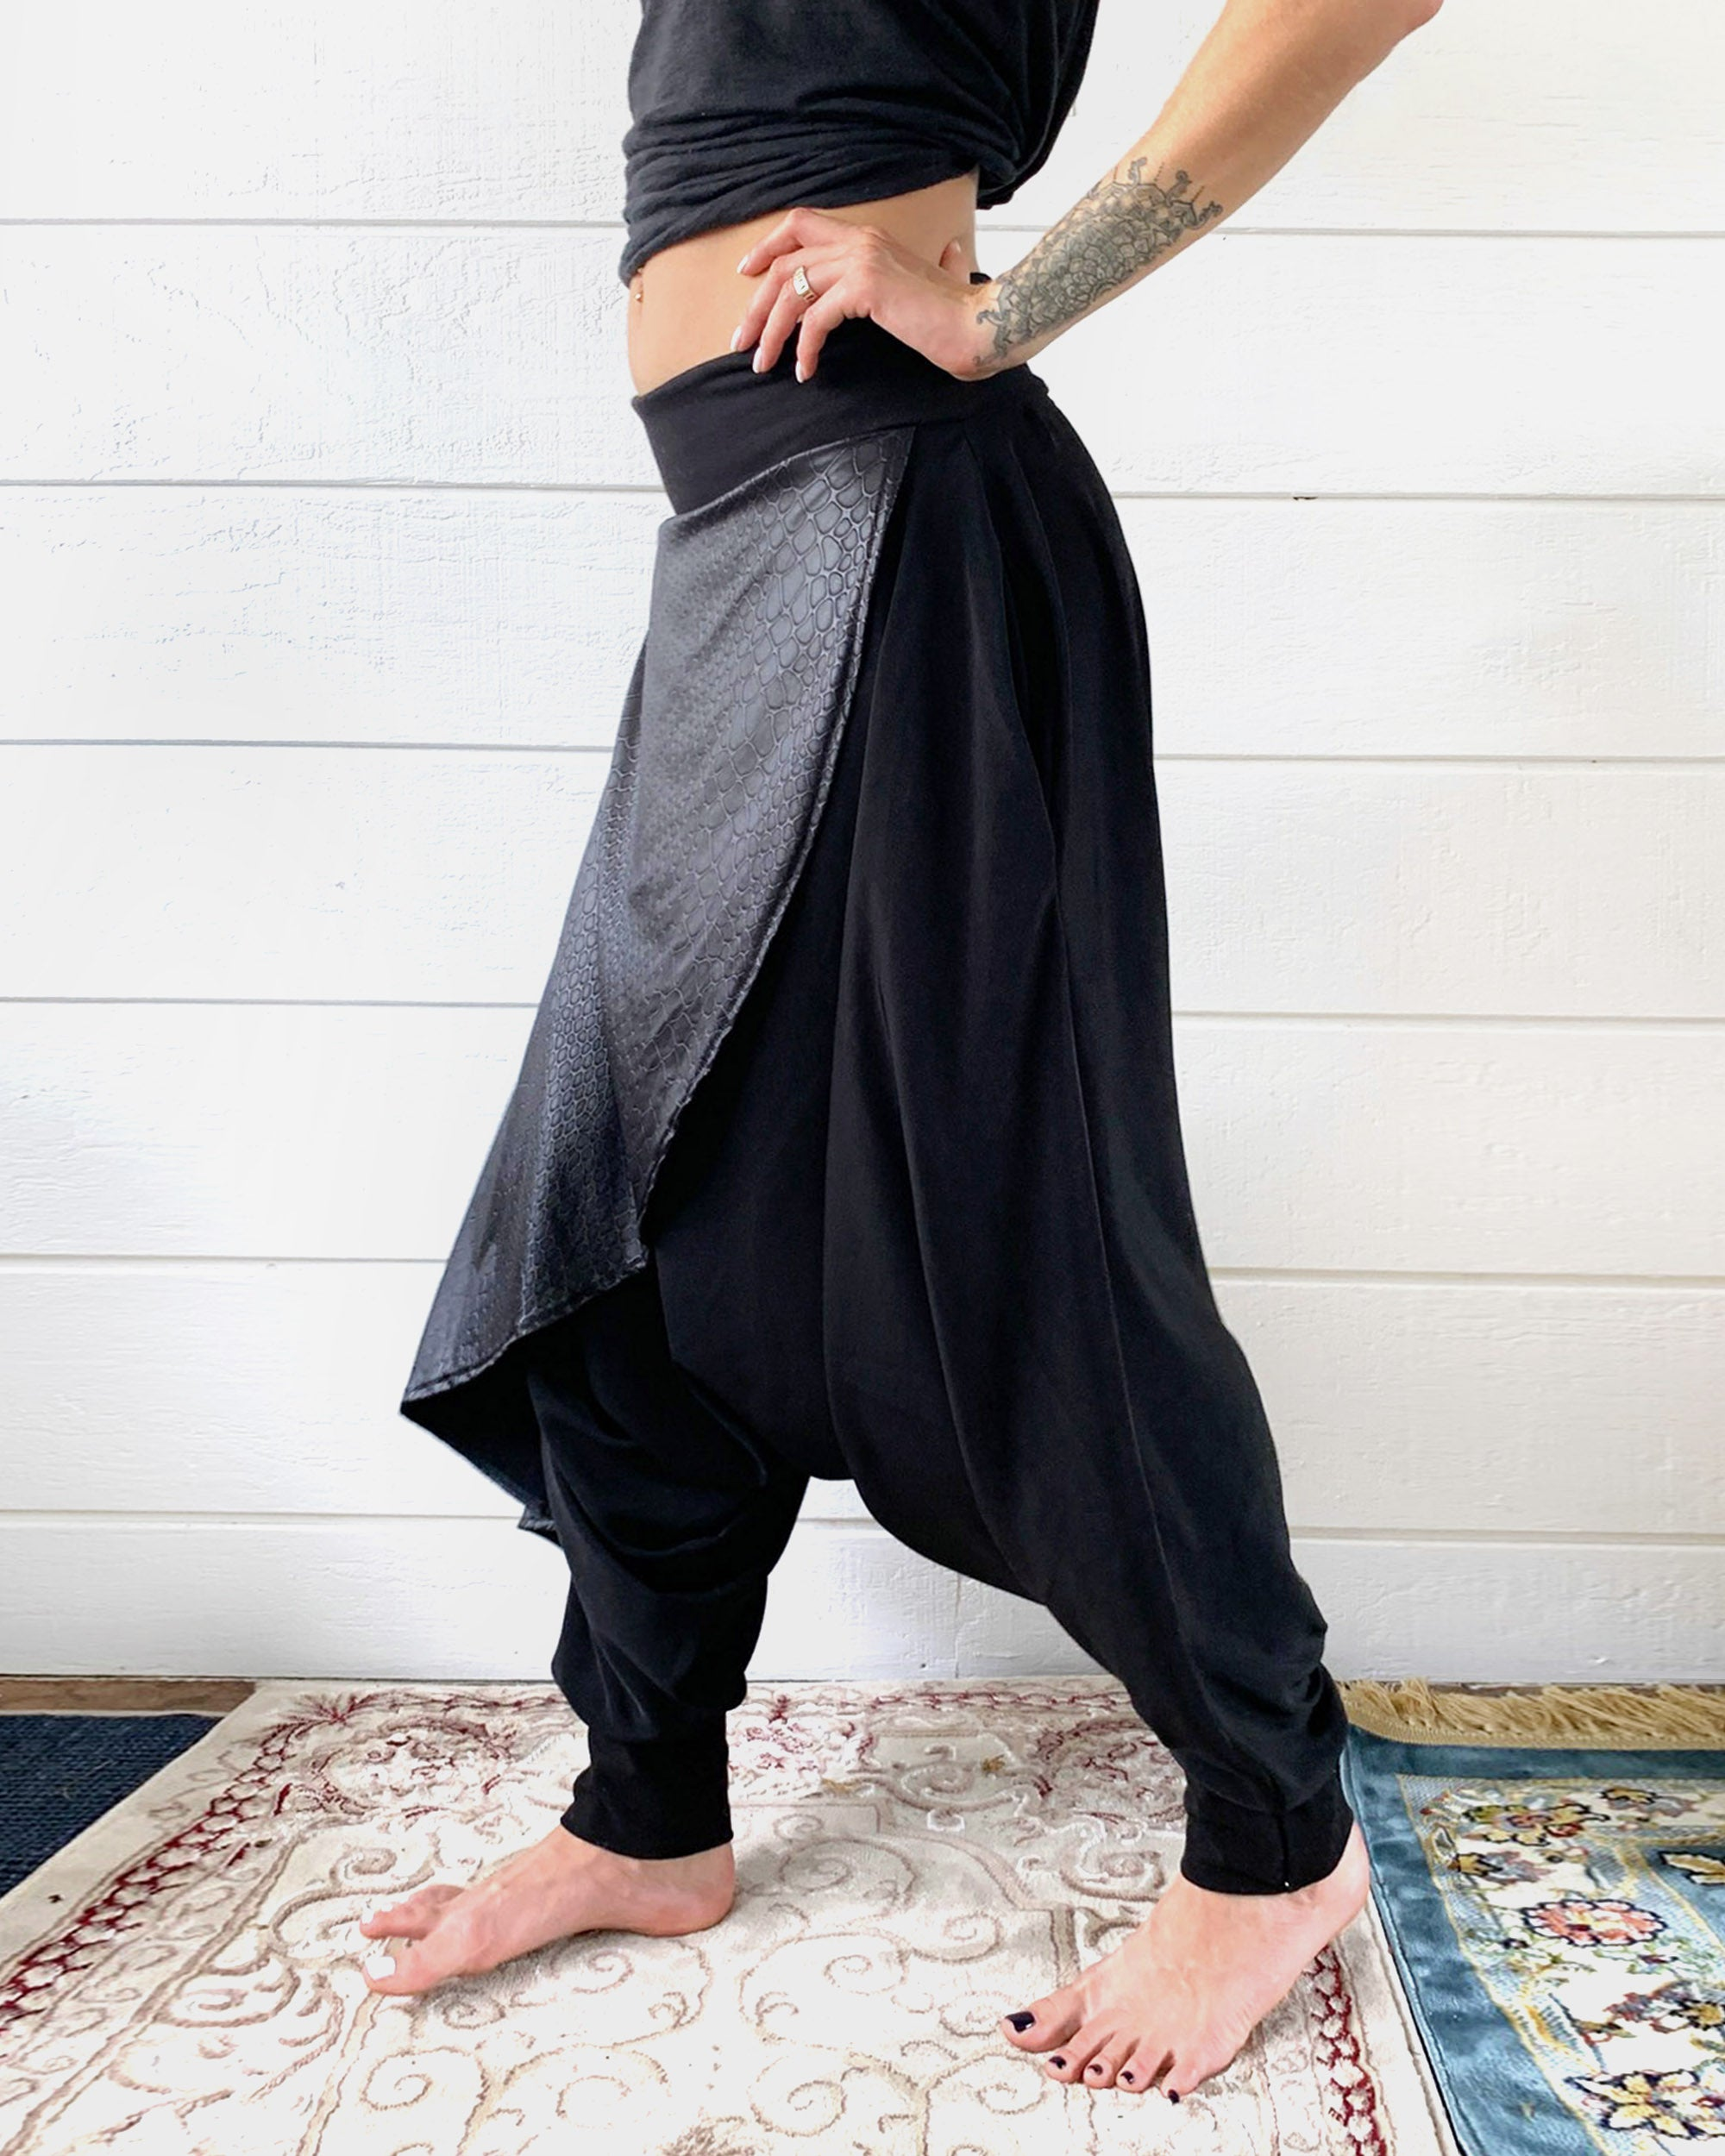 Glorka Dropcotch Pants